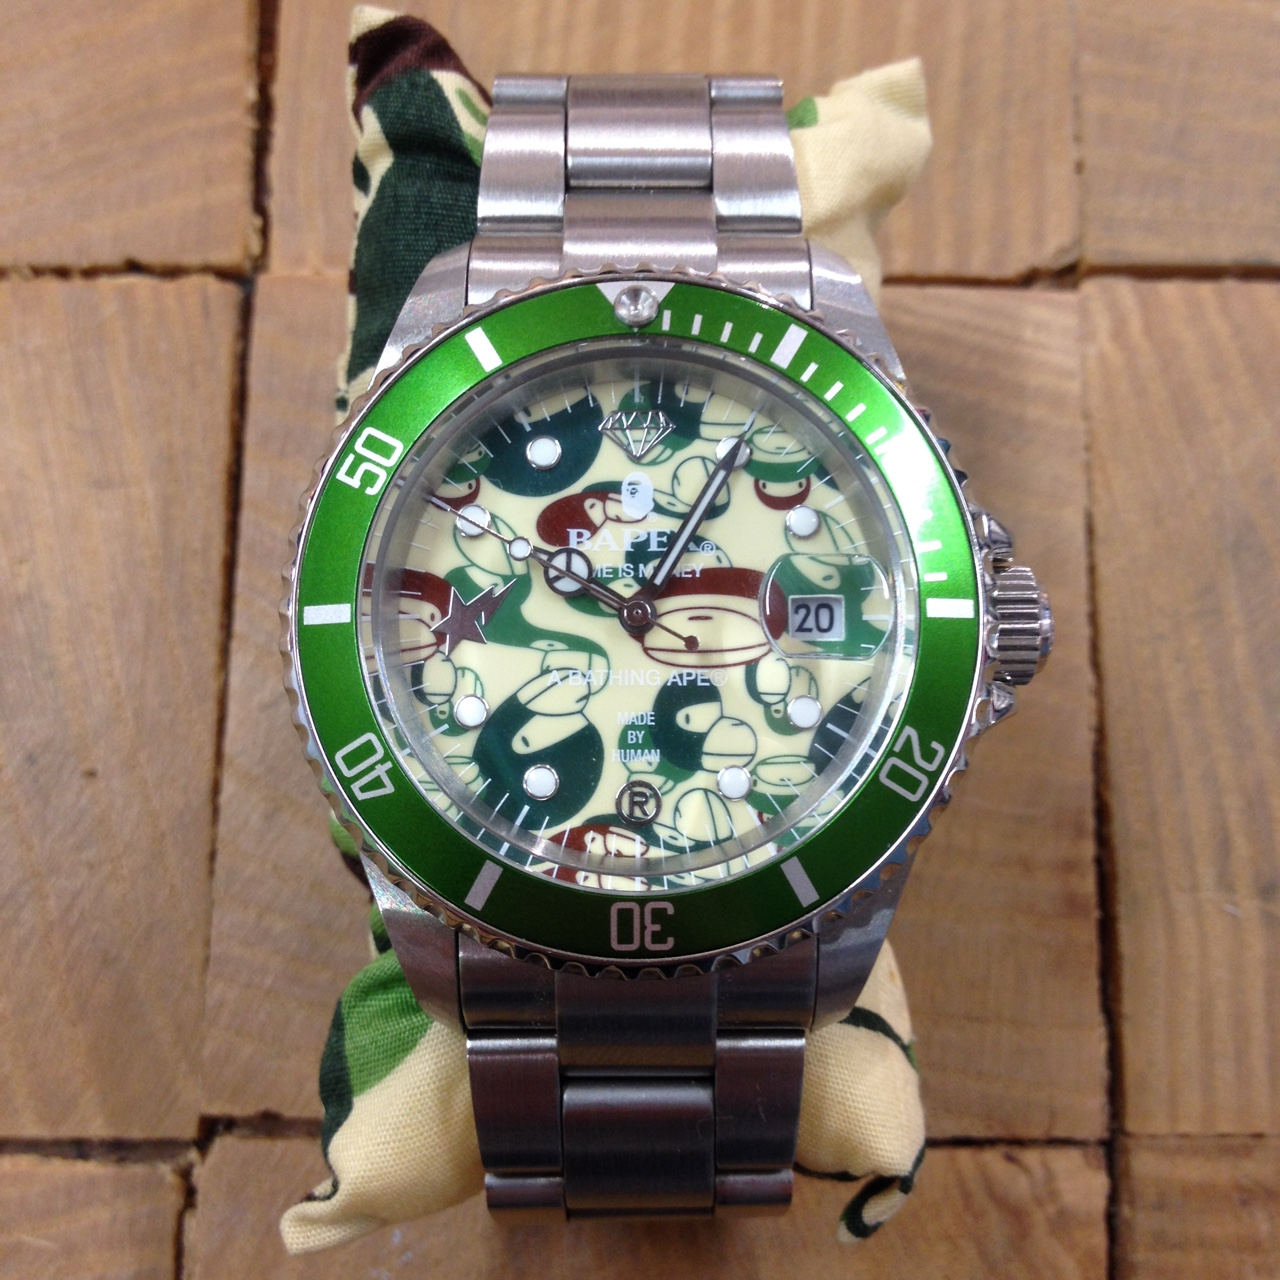 Extremely Rare Bathing Ape Bapex Submariner Watch Depop